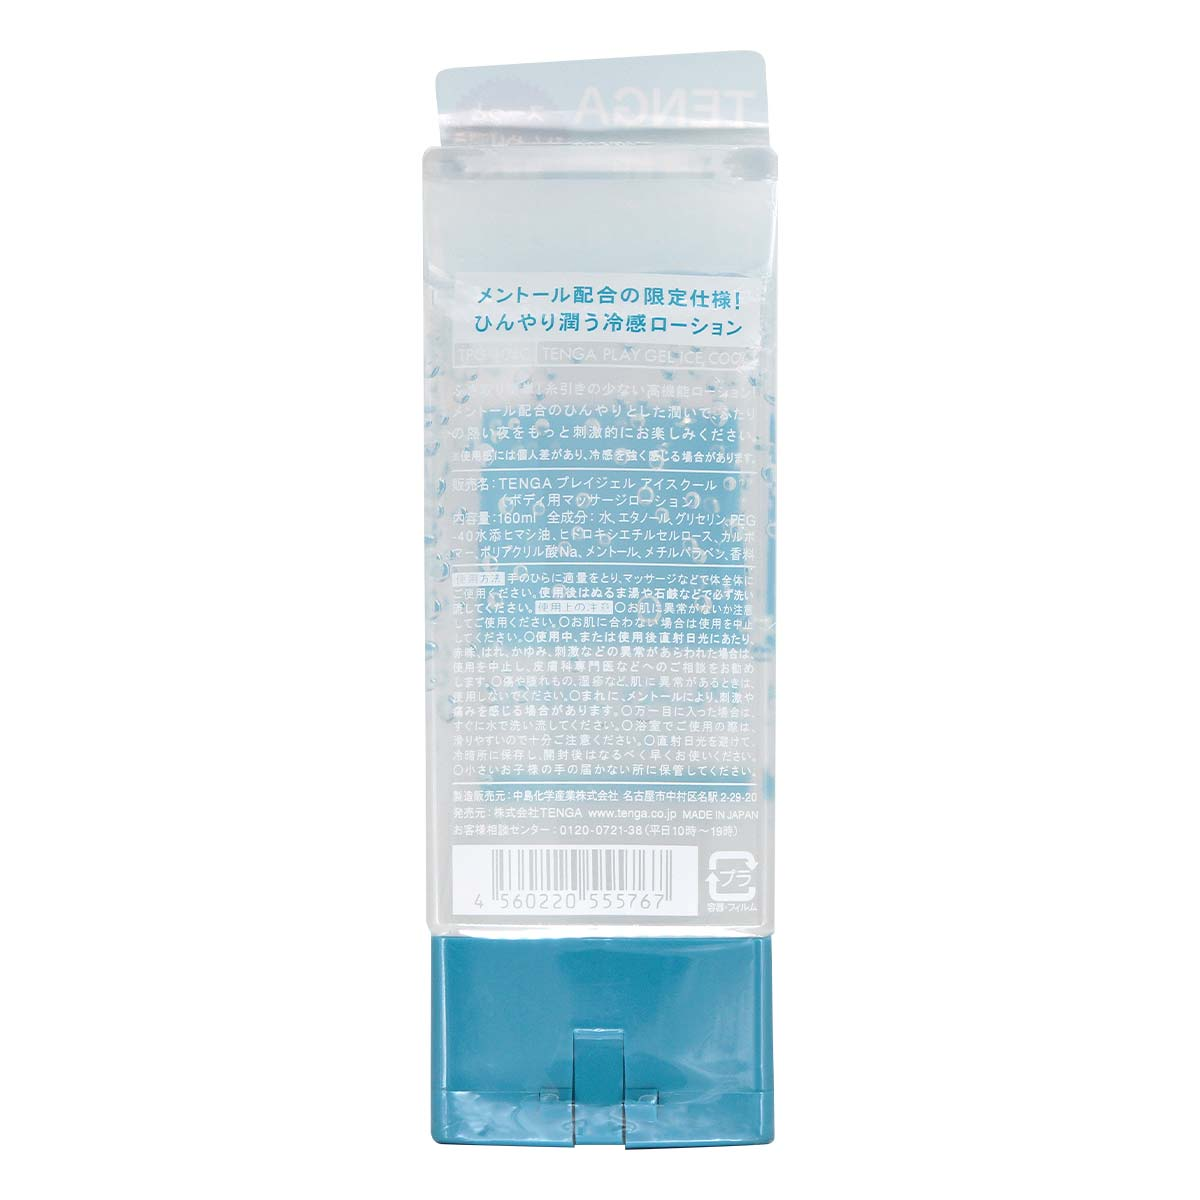 TENGA PLAY GEL ICE COOL 160ml 水基润滑剂